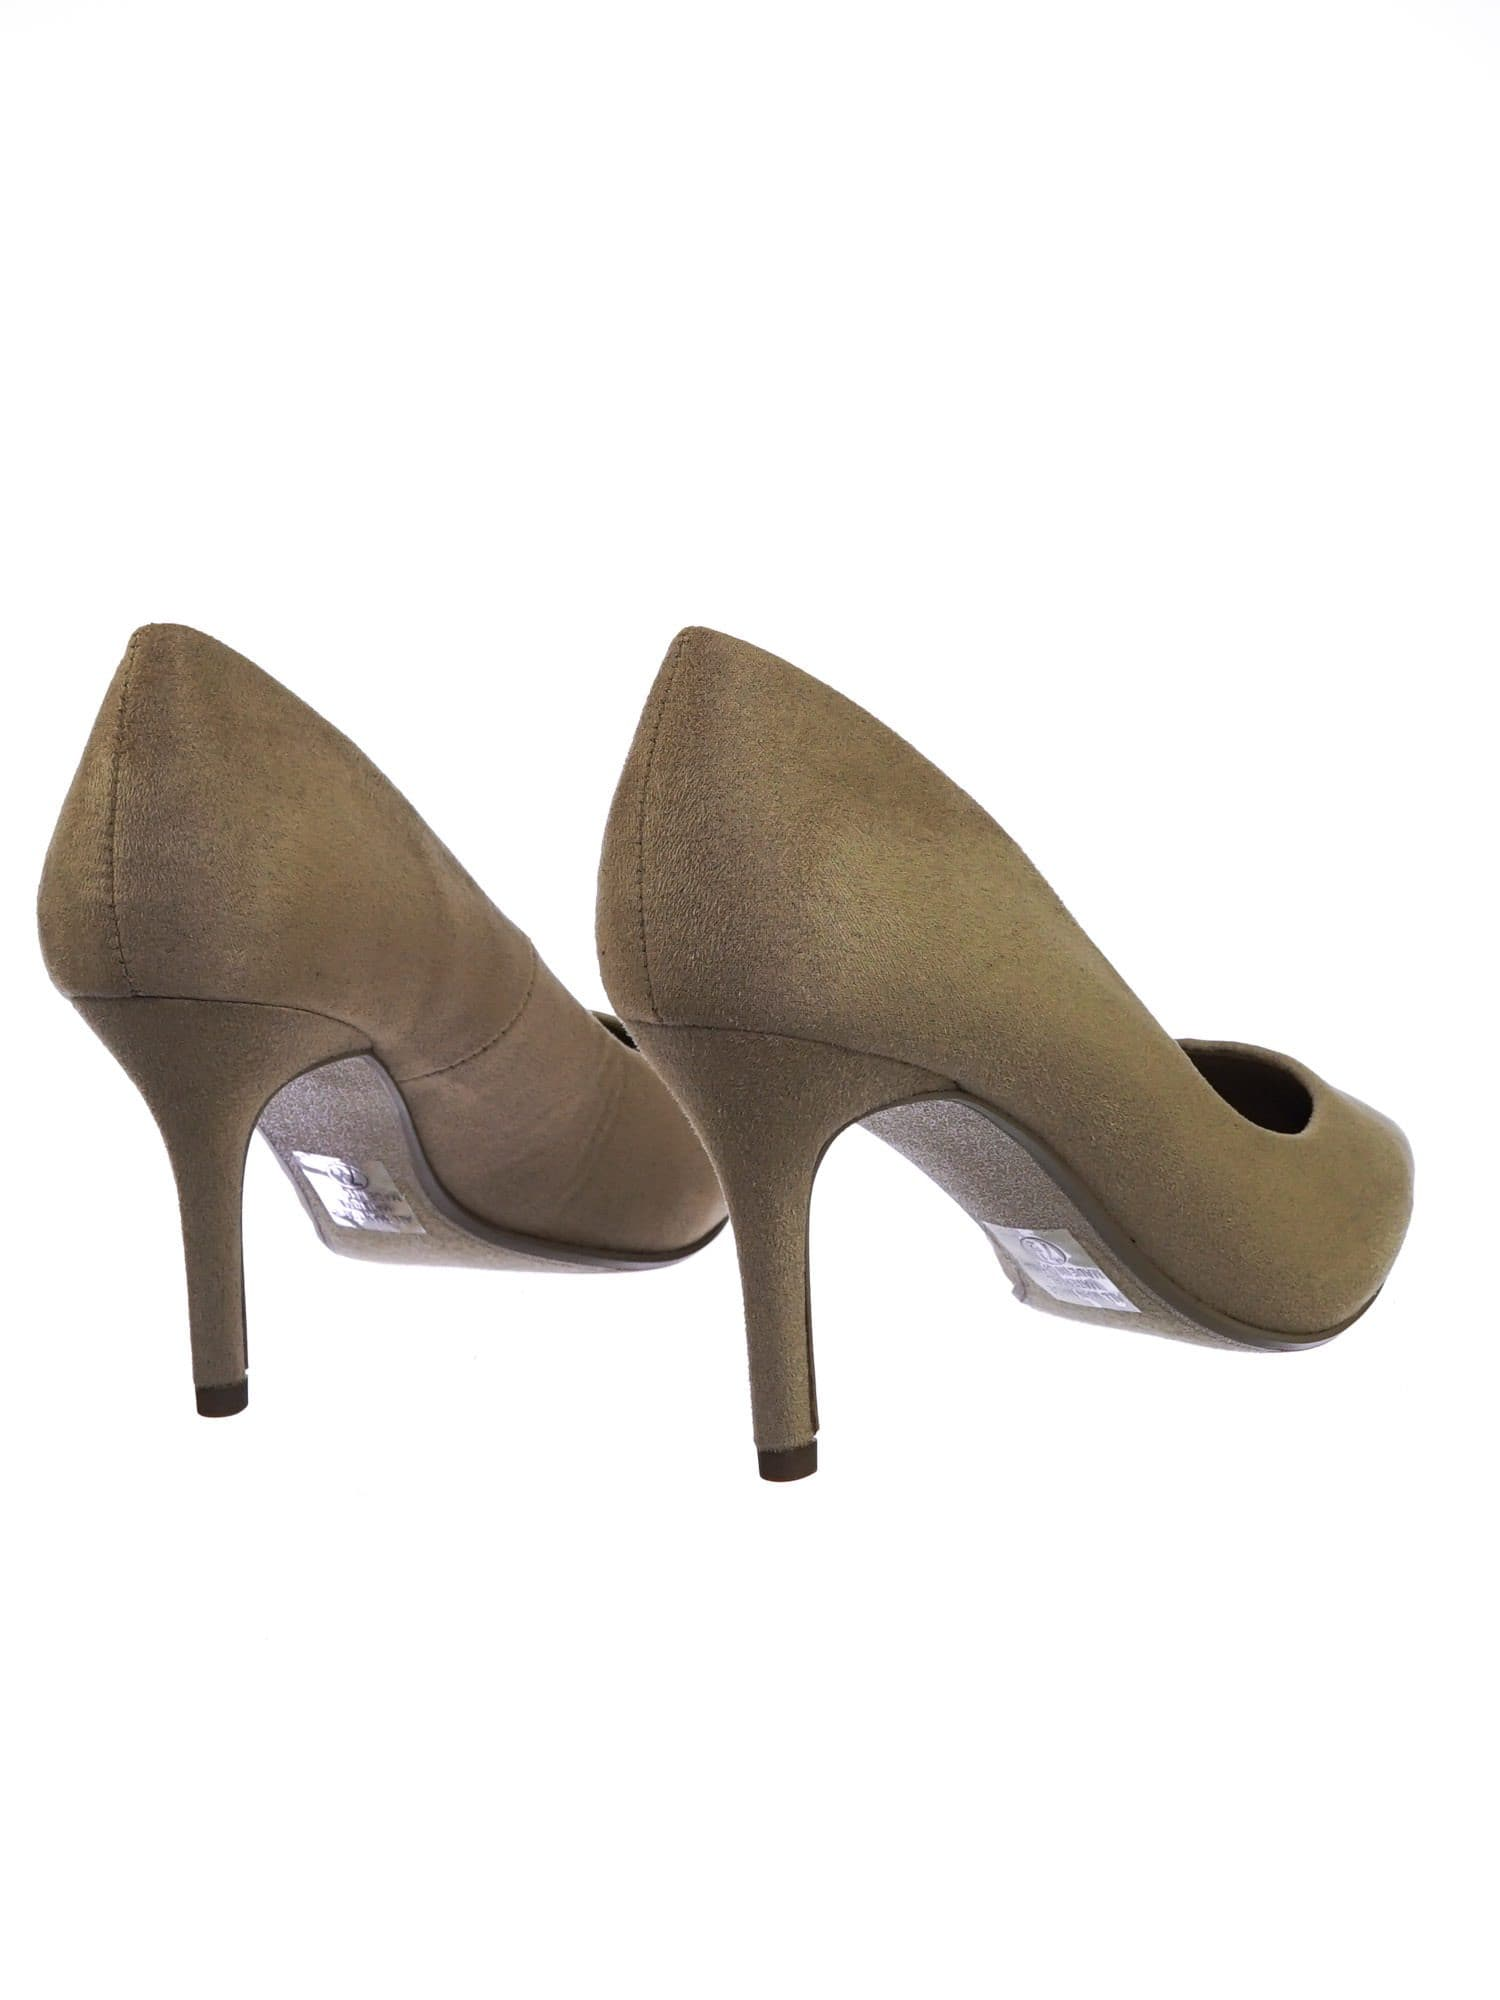 Libby DweaSU Extra Comfortable Foam Padded Cushion Pointed Toe High Heel Dress Pump